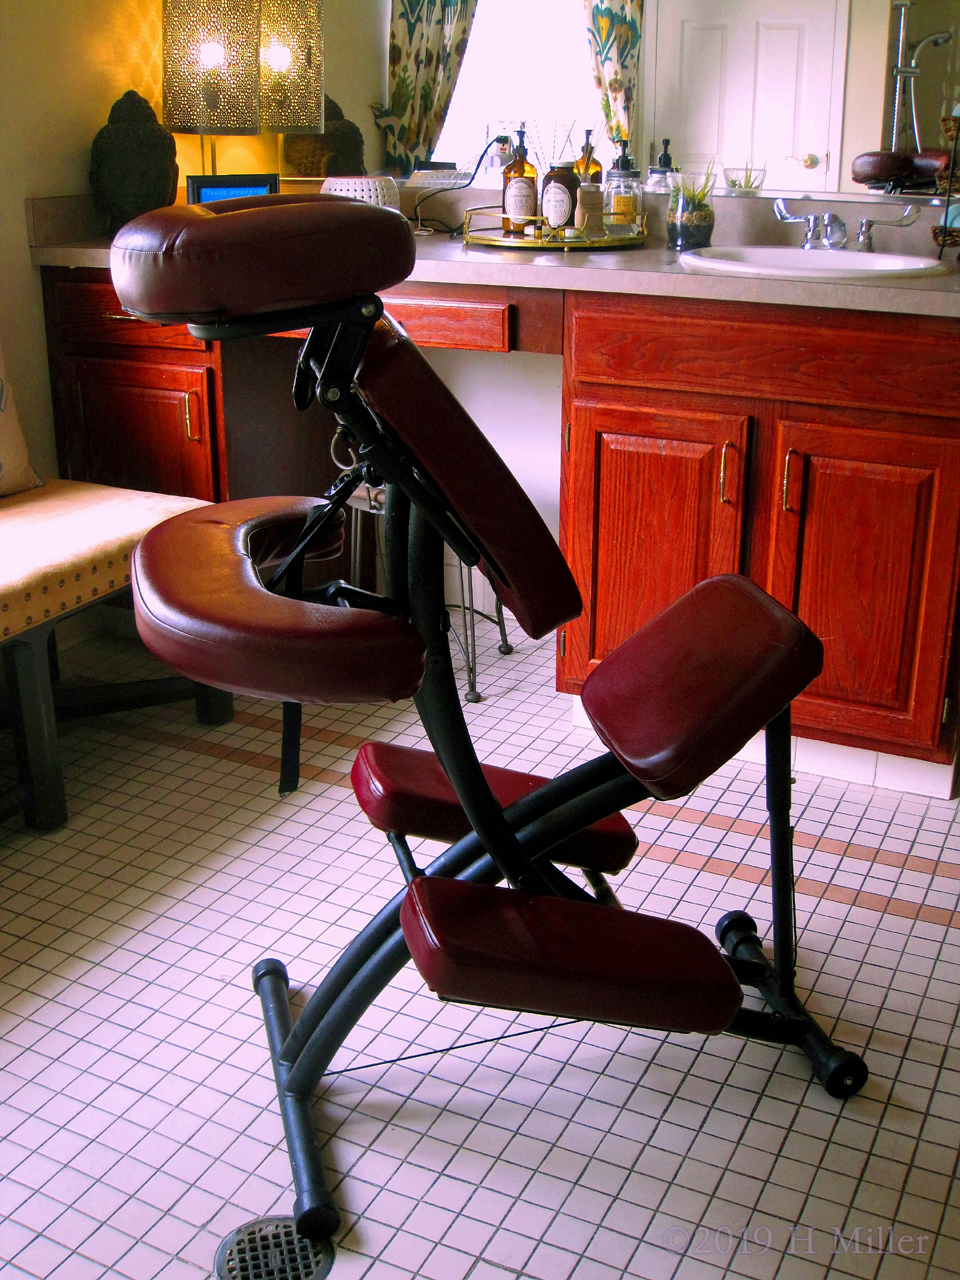 Chair Massage For Elderly Nursing Home Residents In The Spa